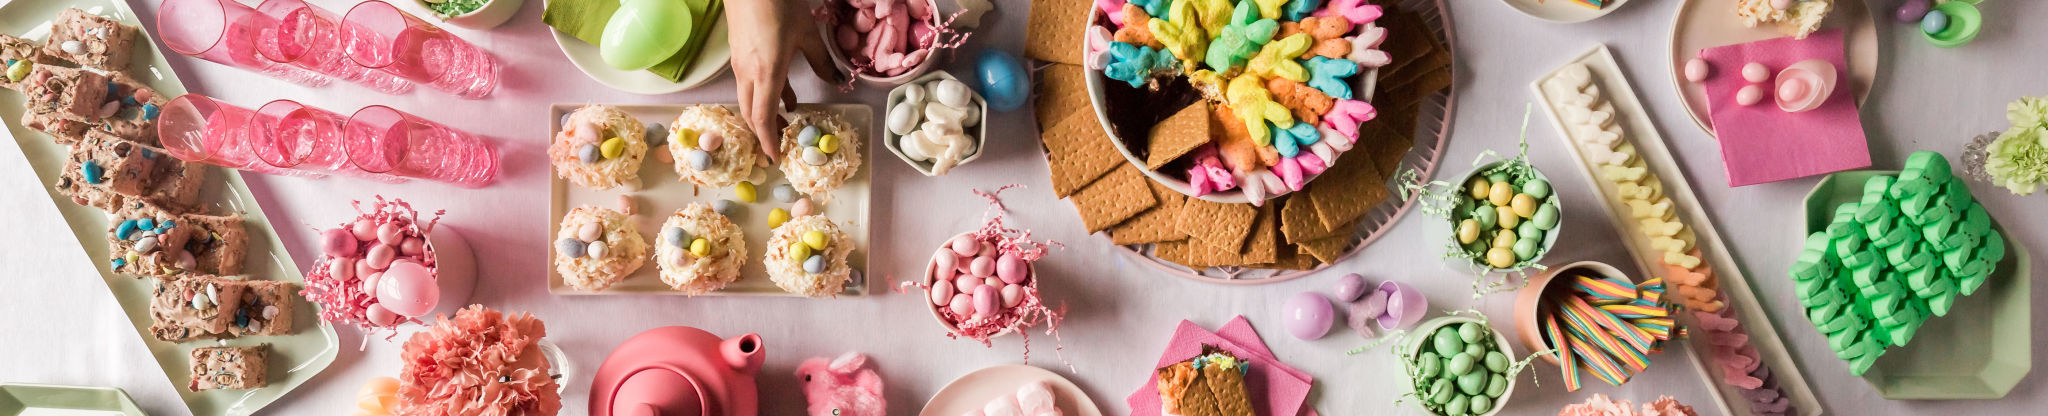 Best Easter Recipes 2017 - Food Ideas for Easter